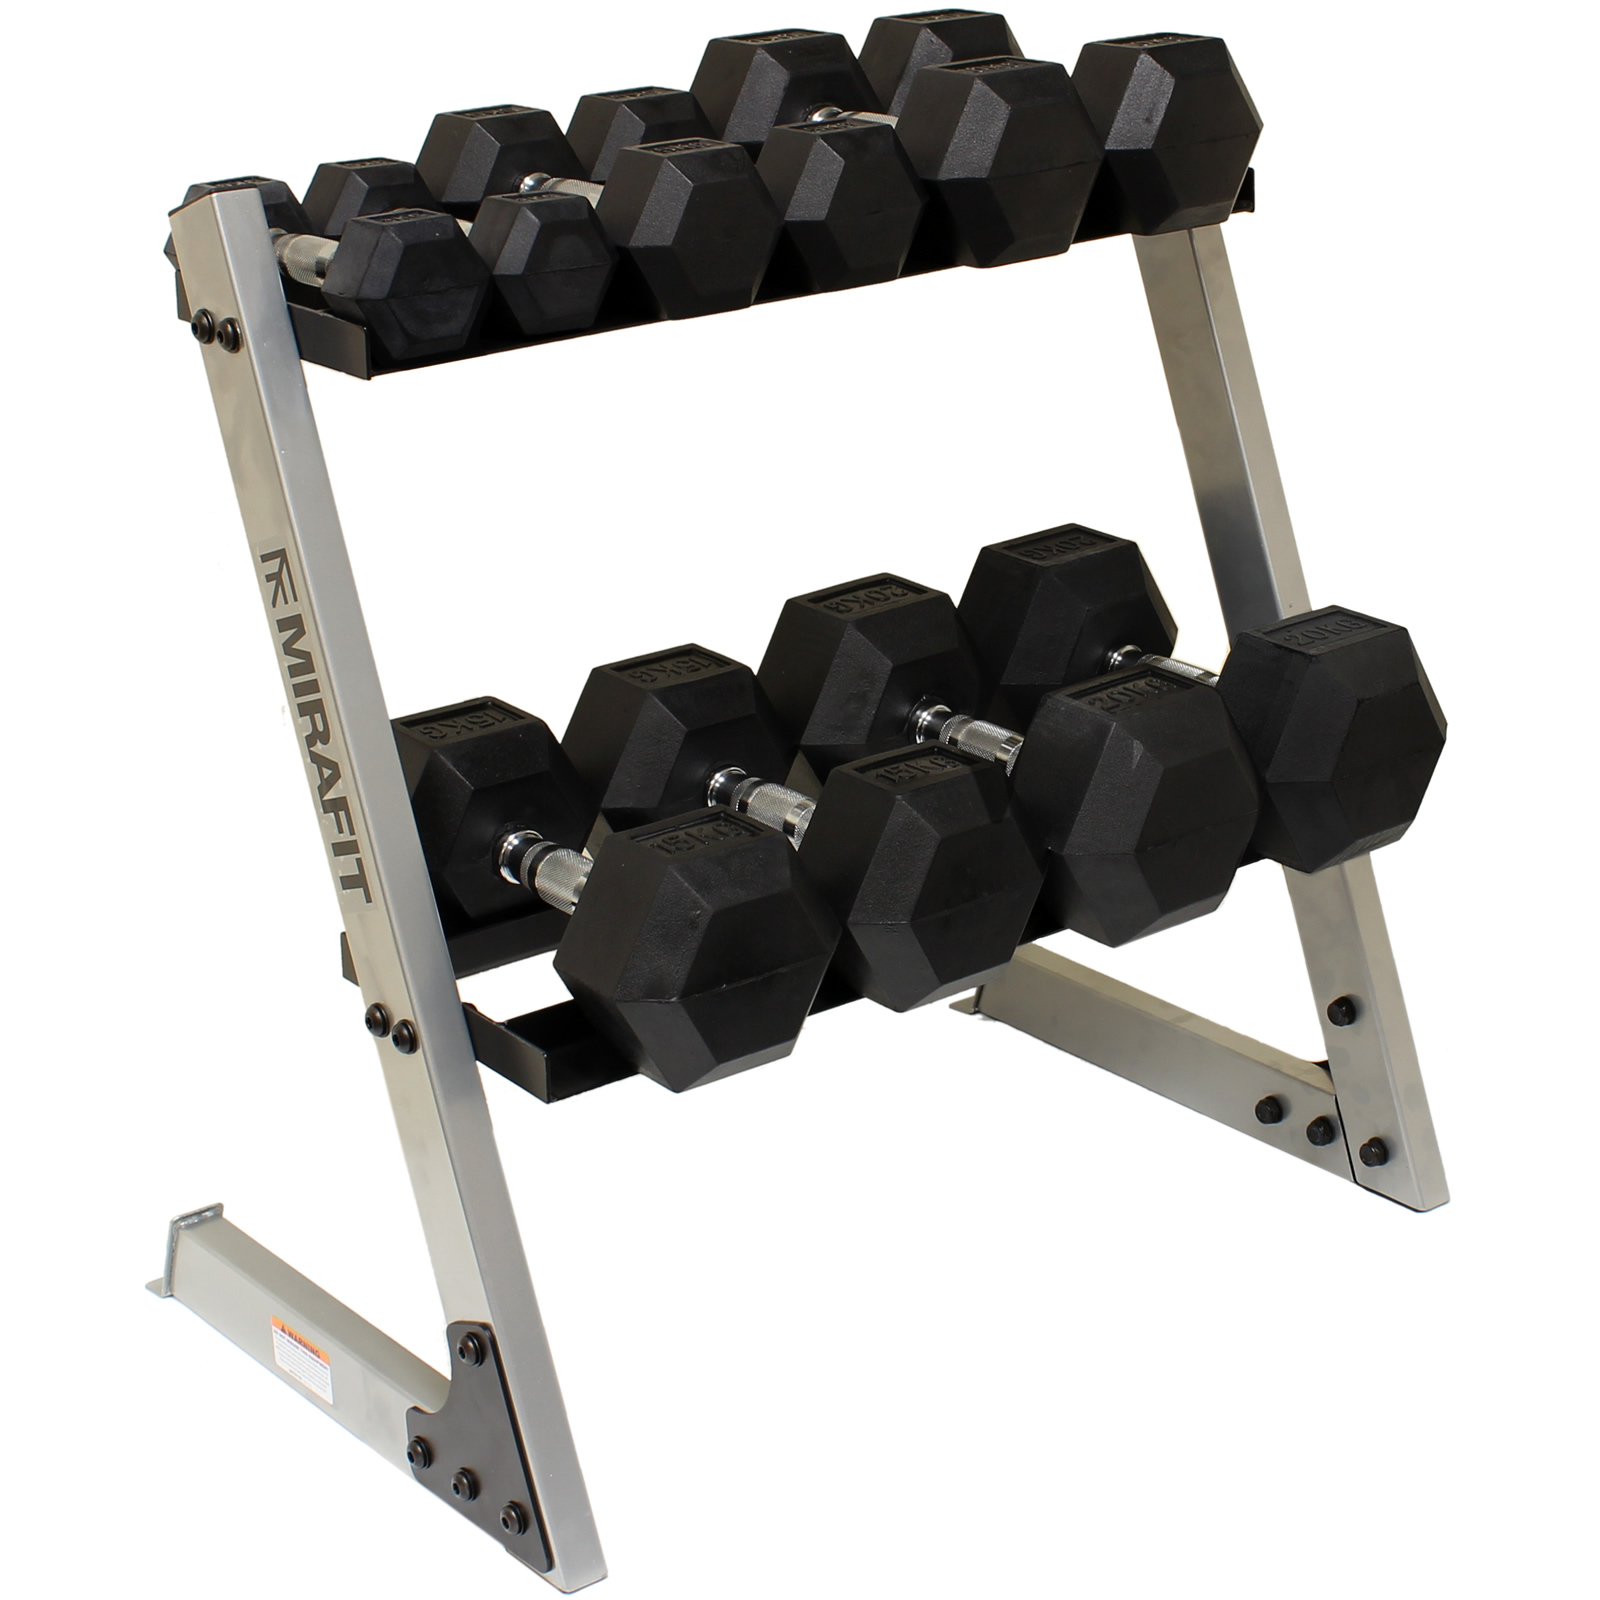 mirafit 150kg 26 2 tier hex dumbbell weight rack storage. Black Bedroom Furniture Sets. Home Design Ideas